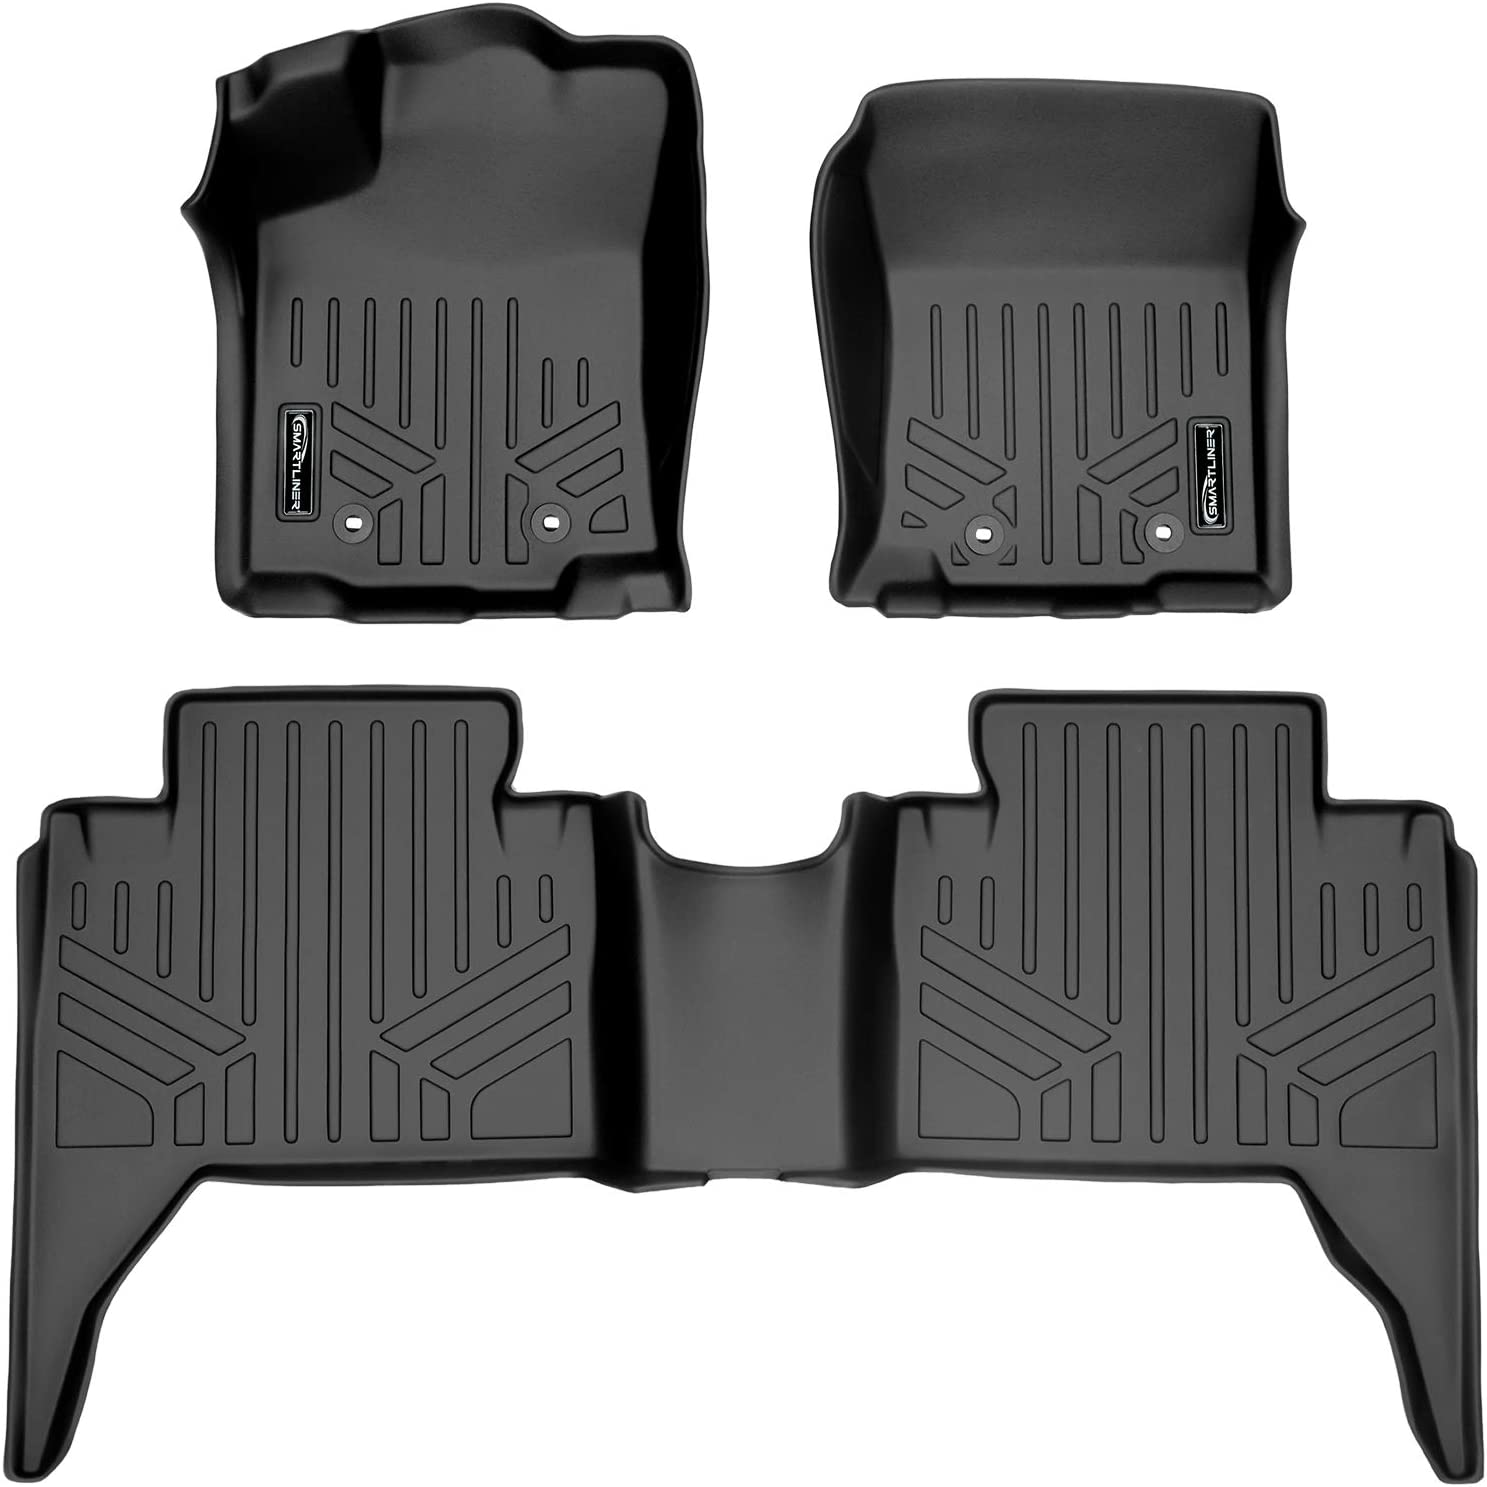 YITAMOTOR Floor Mats Compatible with Tacoma Double Cab Custom Fit Floor Liners for 2018-2020 Toyota Tacoma 1st /& 2nd Row All Weather Protection